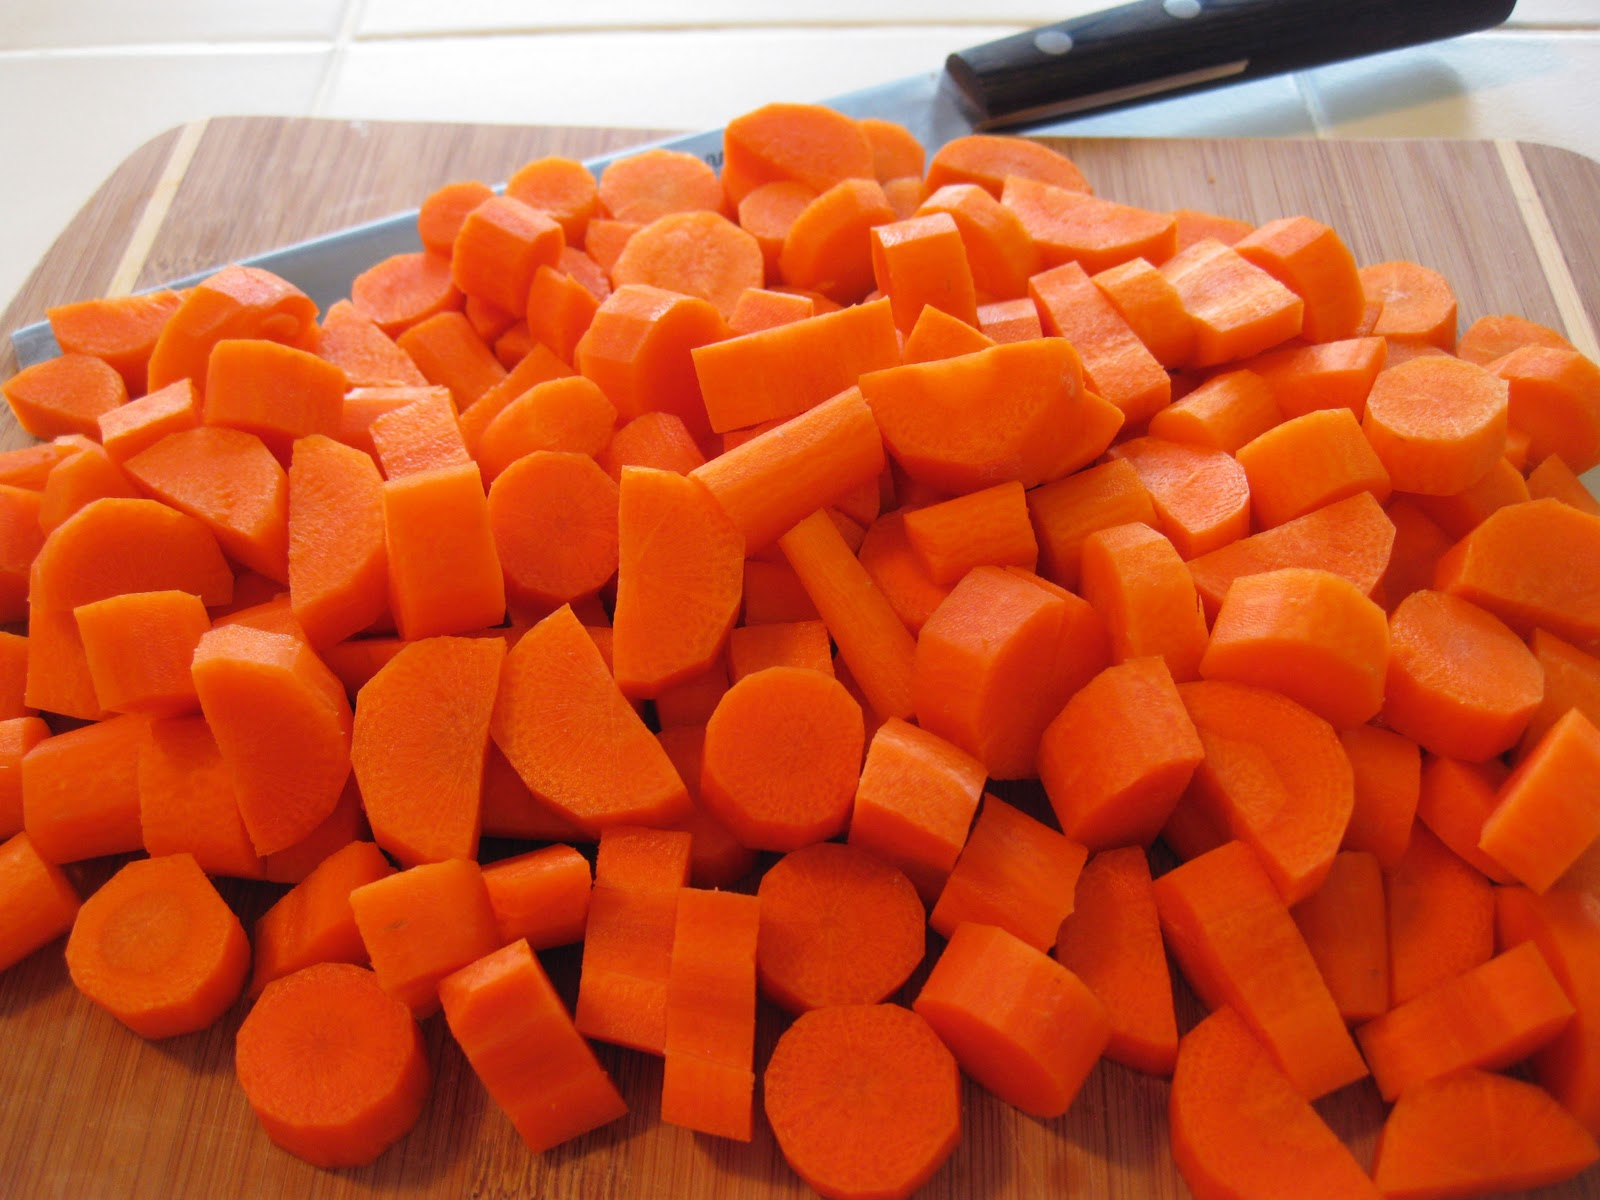 chopped carrots - photo #4